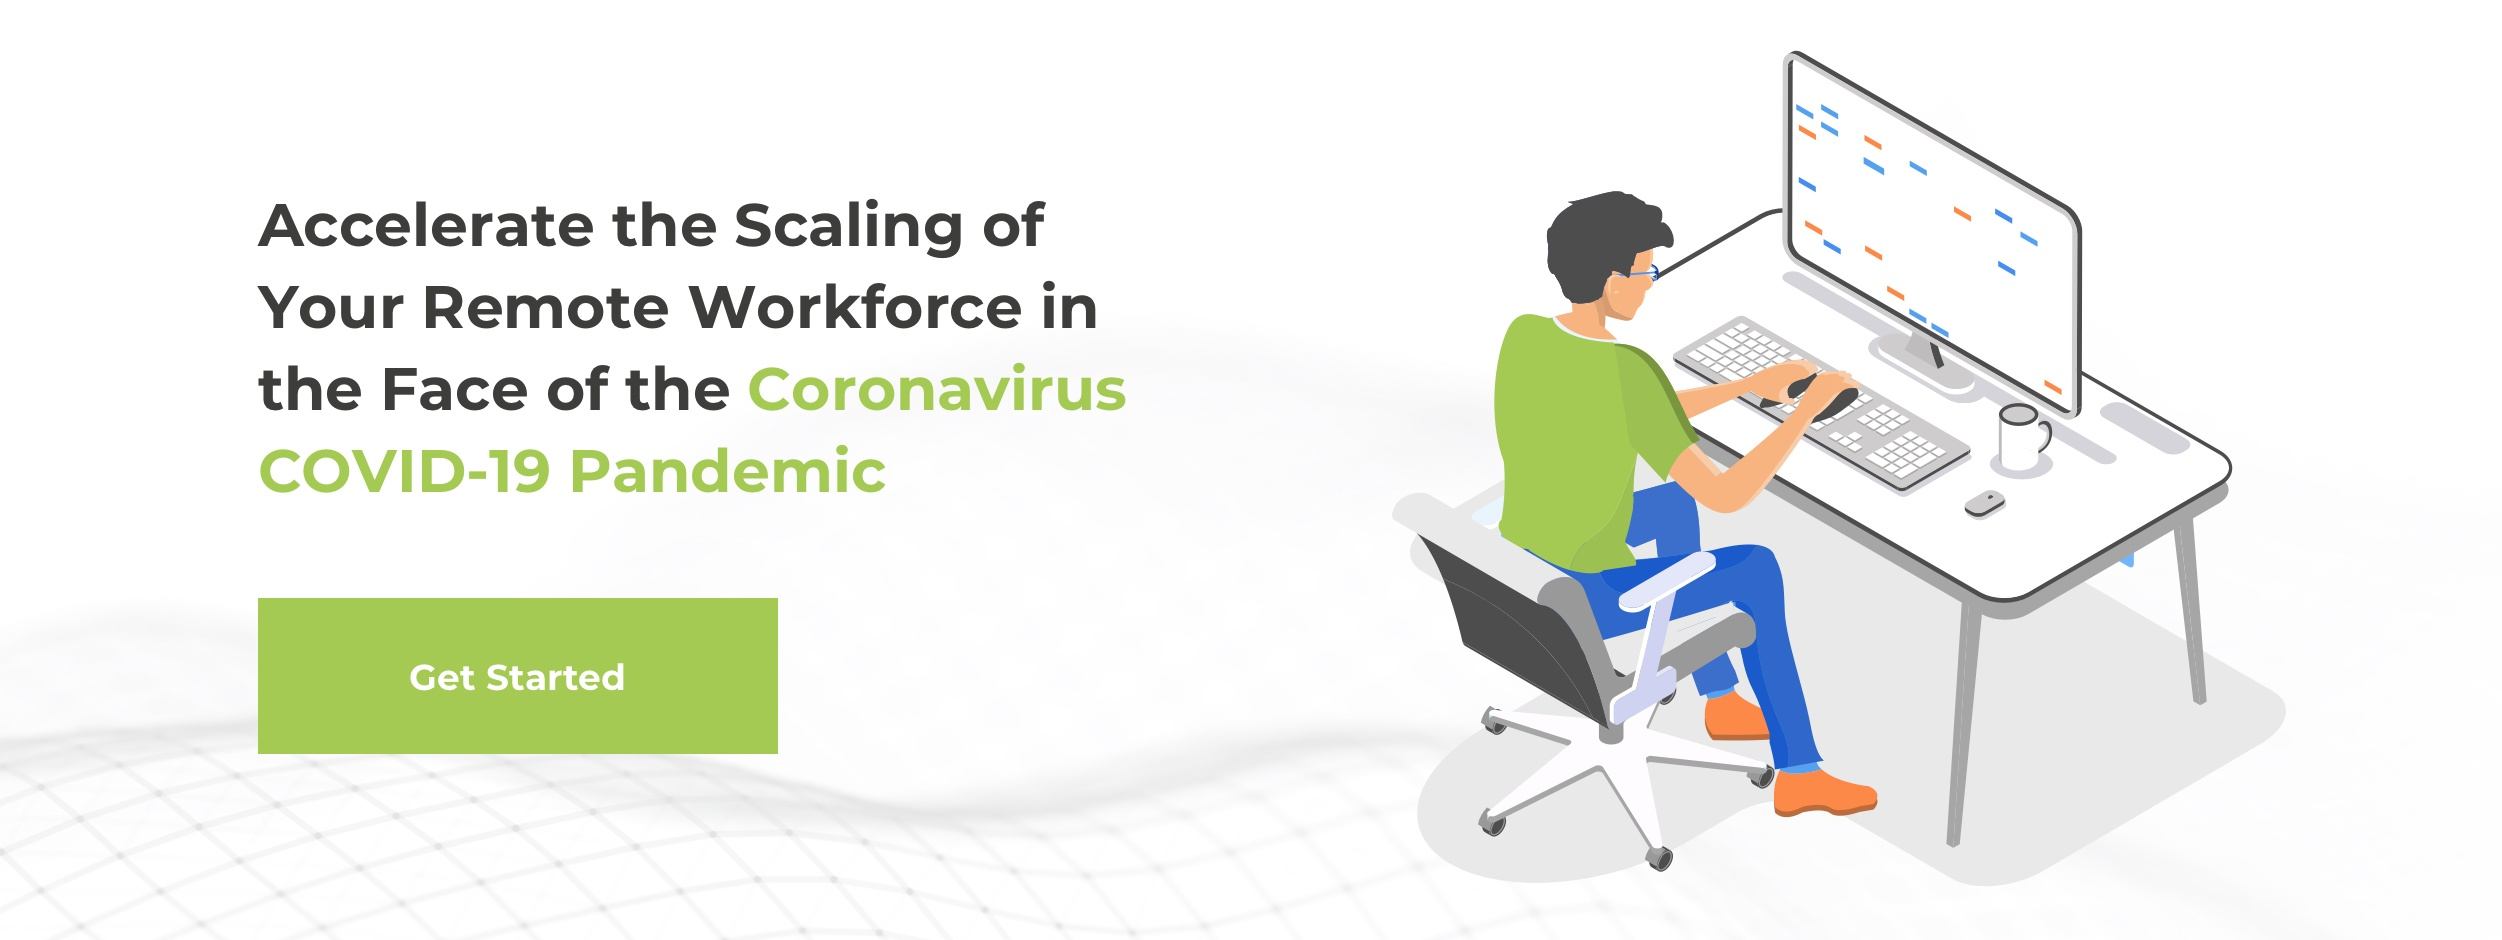 Accelerate the Scaling of Your Remote Workforce in the Face of the Coronavirus COVID-19 Pandemic